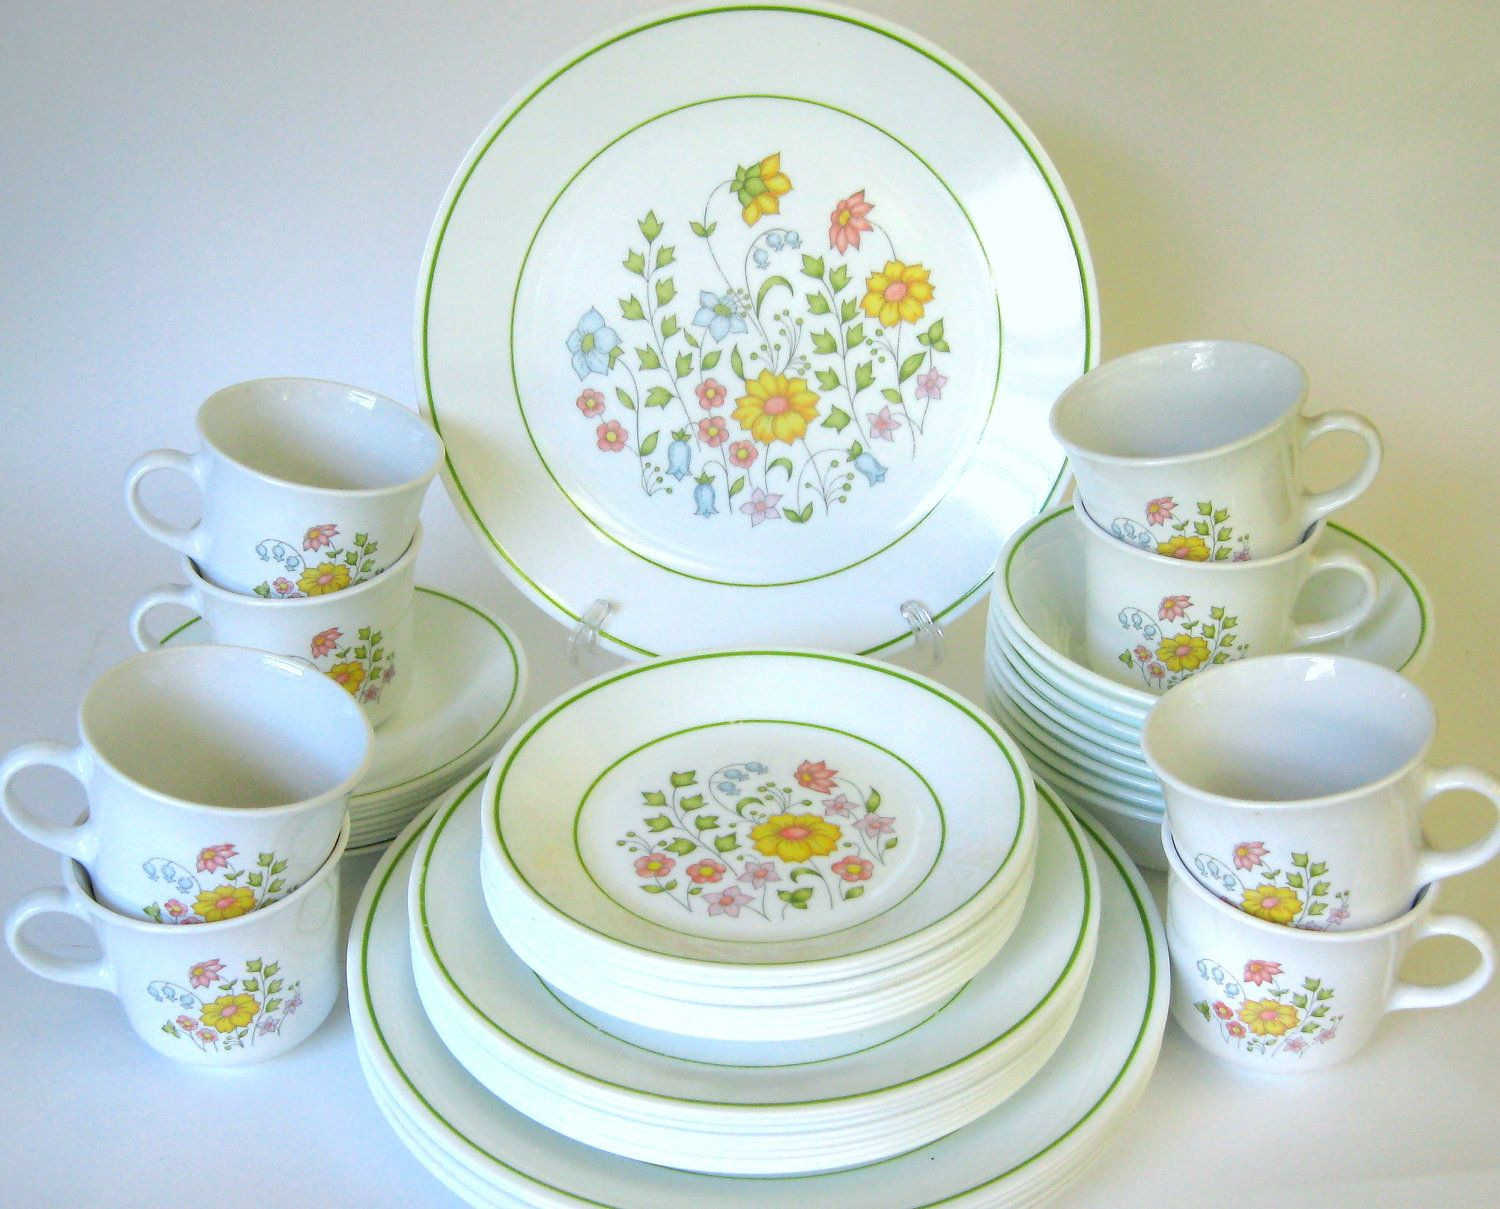 48-Pc Corelle \ Meadow\  Dinnerware Set for 8 -Complete Service for Eight- Spring Floral Livingware Dishes 1970s-80s & 48-Pc Corelle \